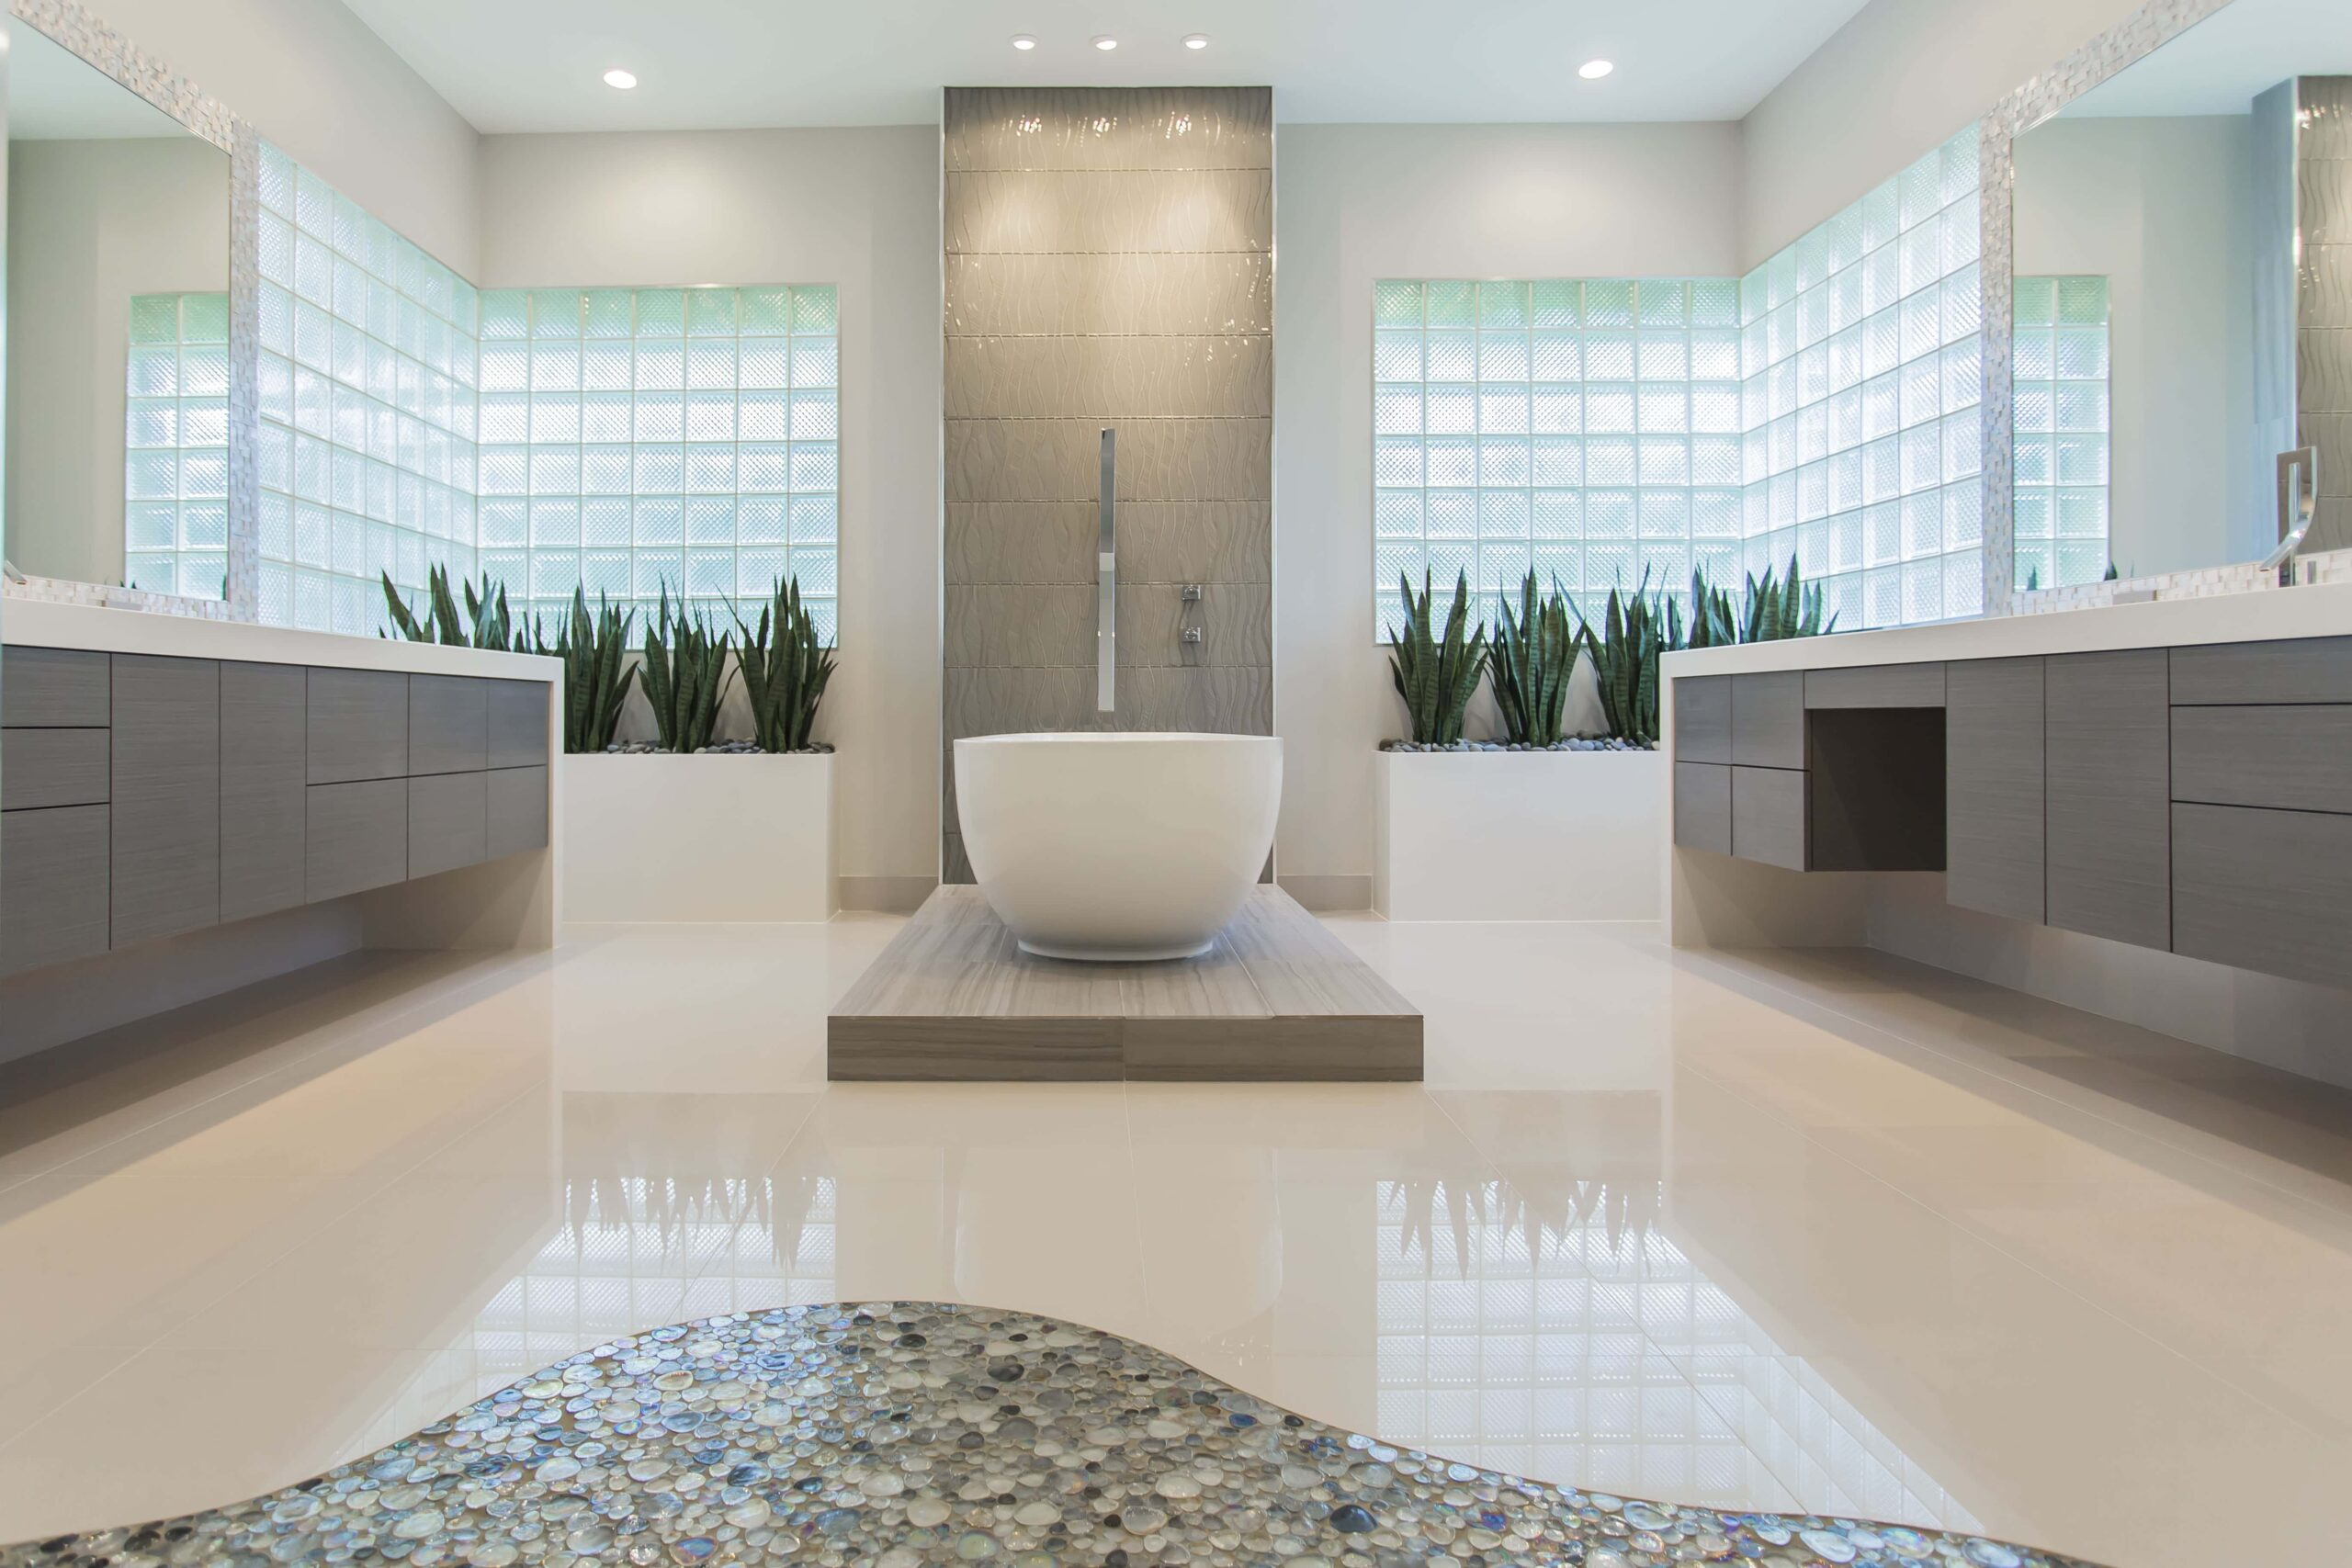 memorial modern master bath remodel houston tx 2015 - Houston Tx Bathroom Remodeling